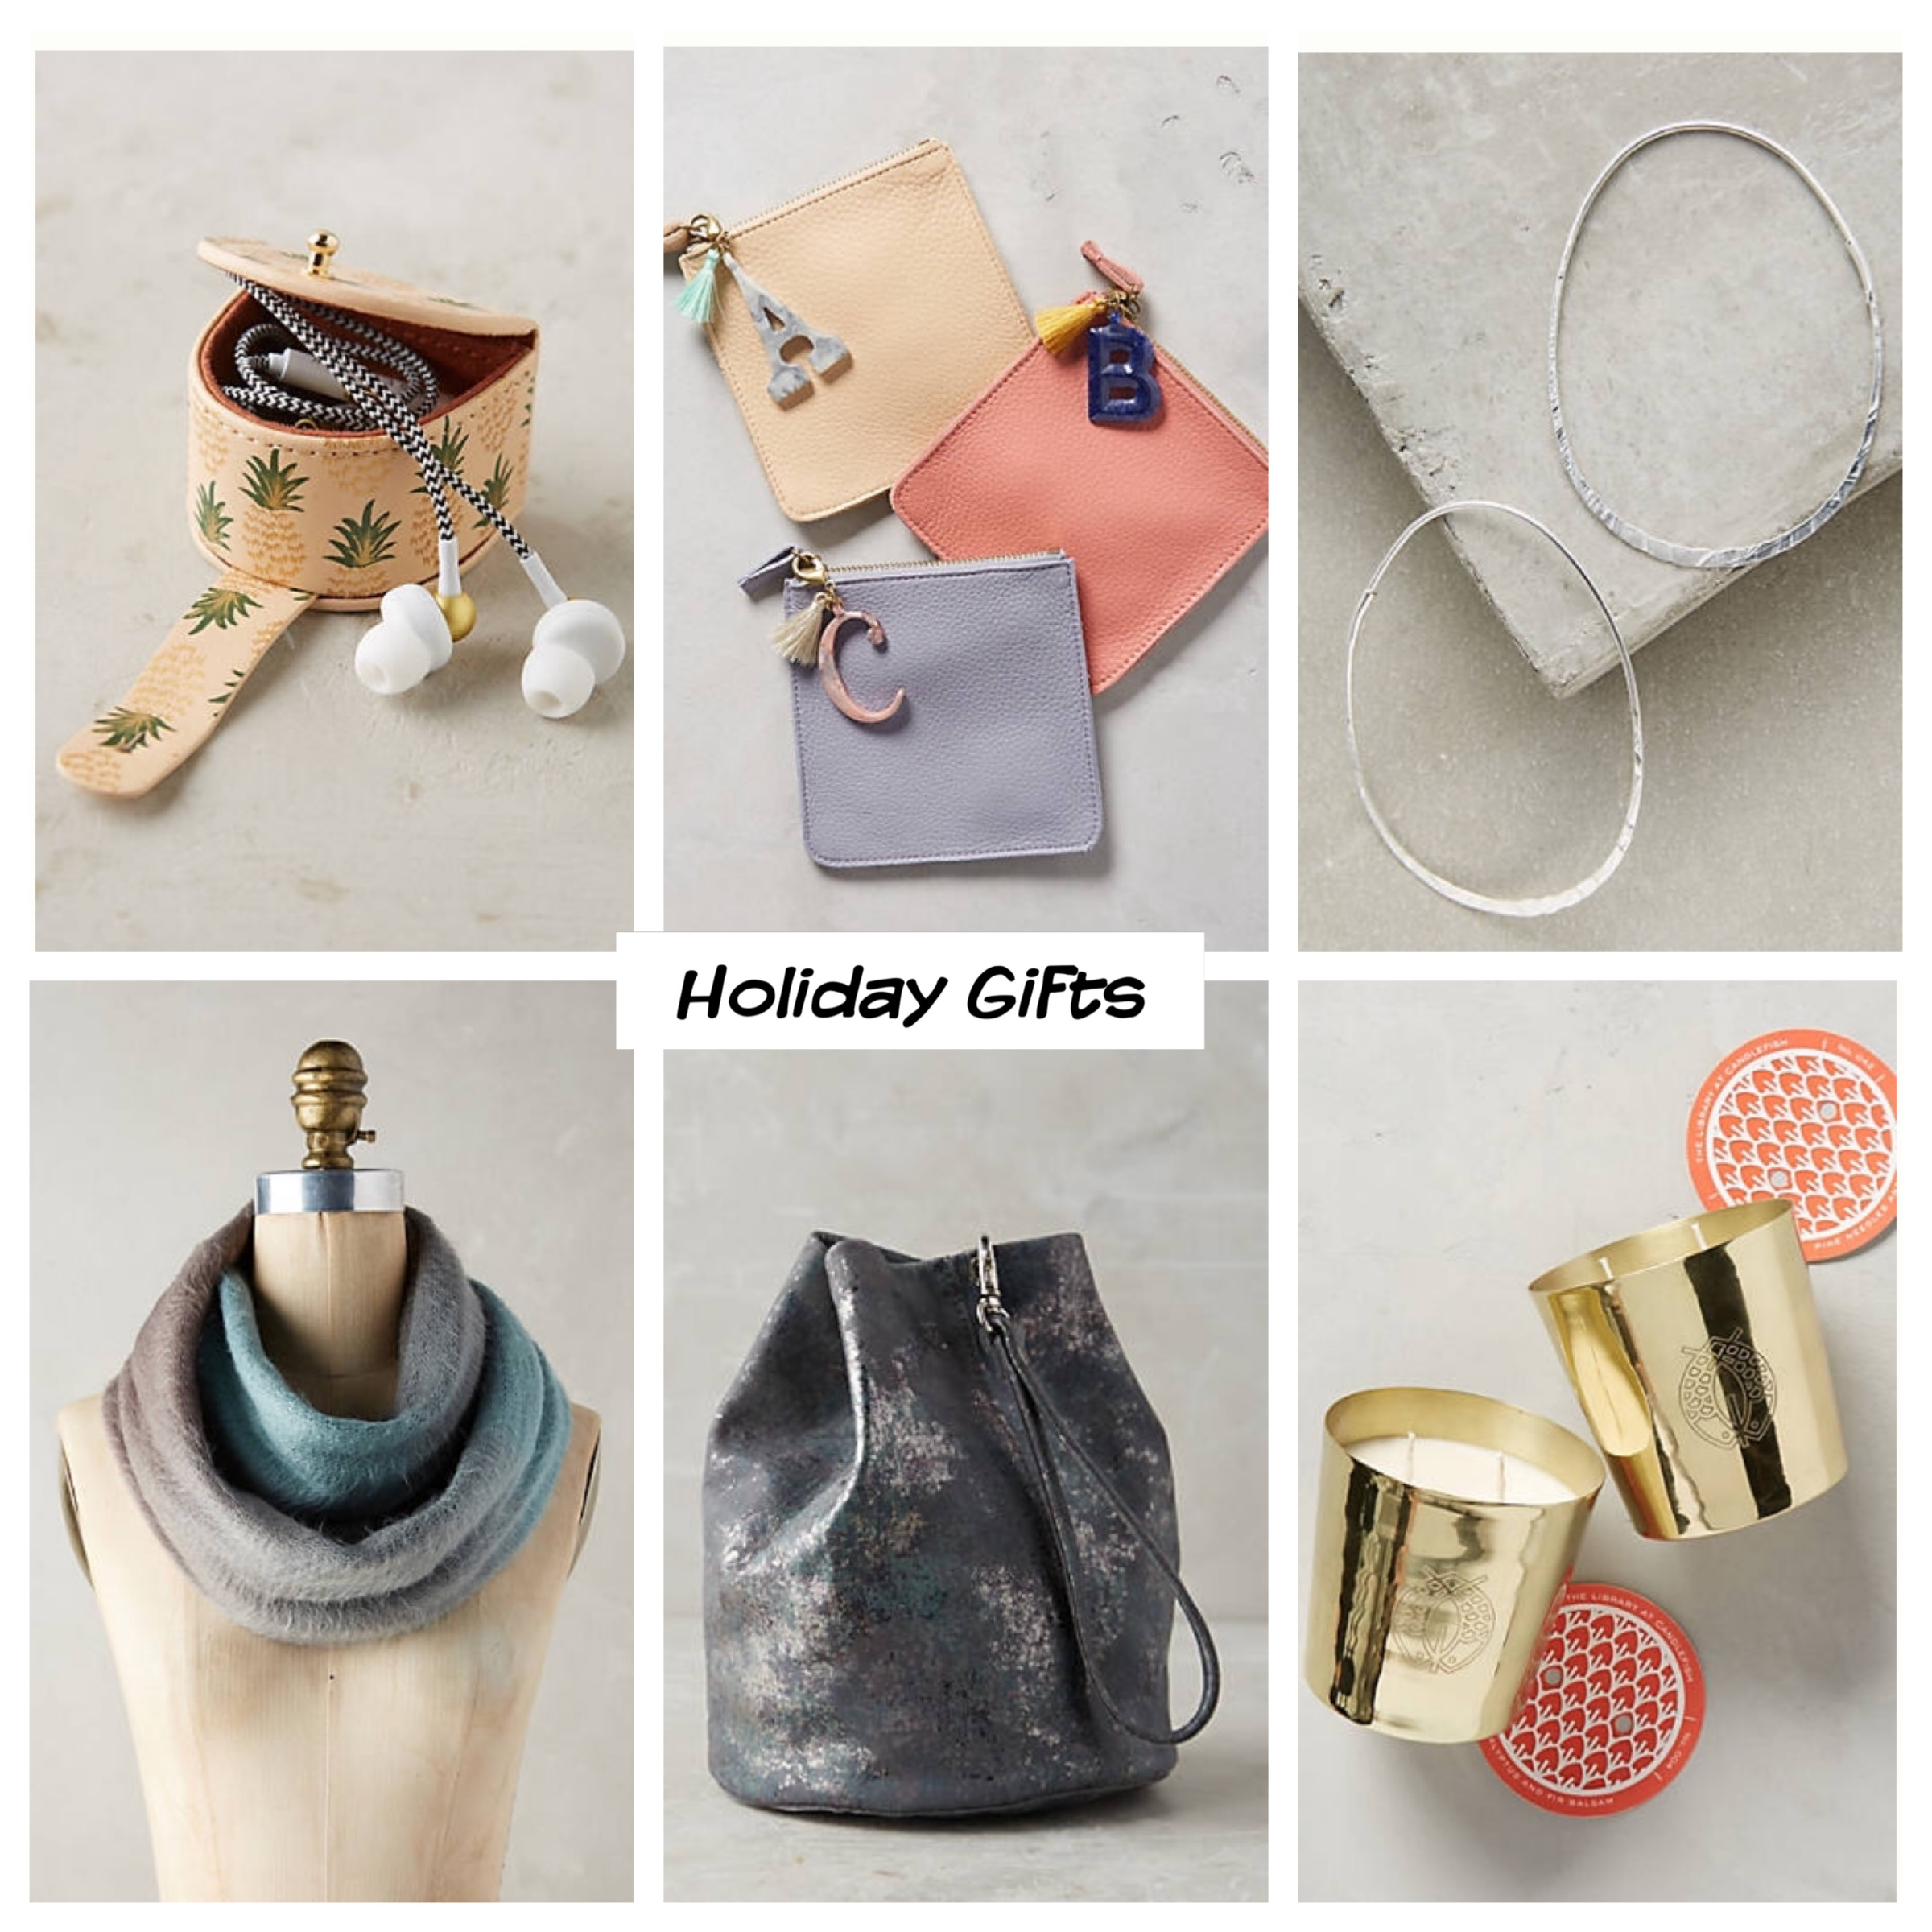 All items featured are from Anthropologie, prices range between $20-$128.